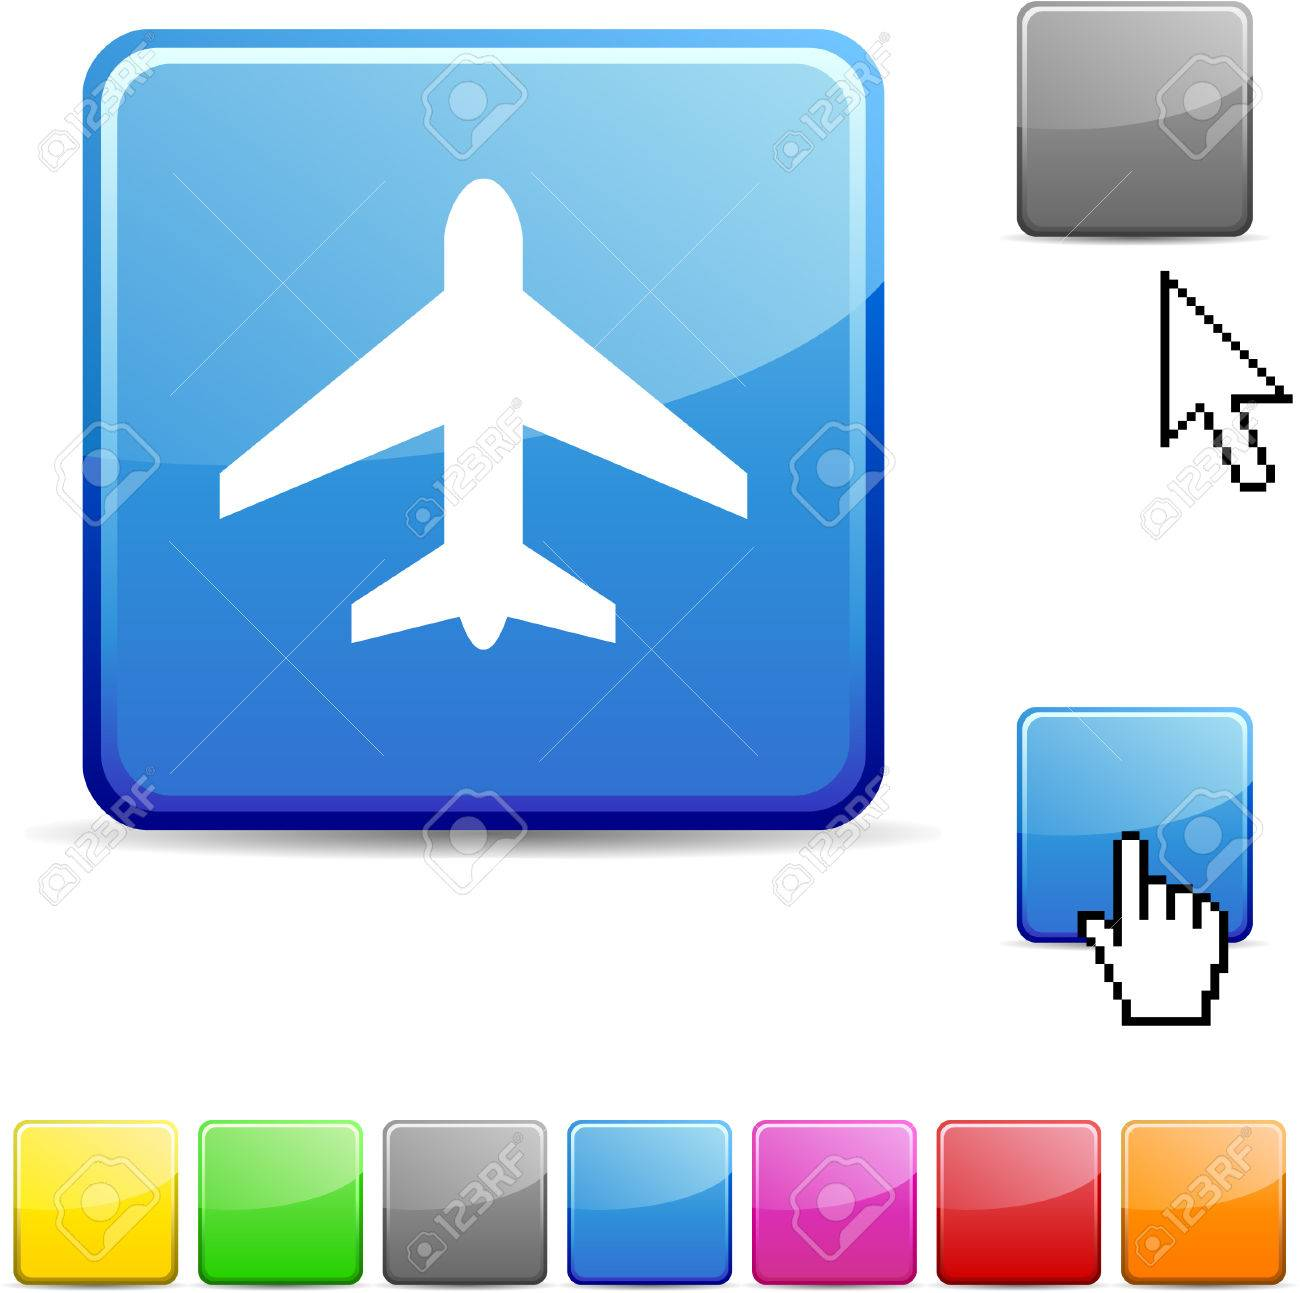 Aircraft glossy vibrant web icon. Stock Vector - 7107703